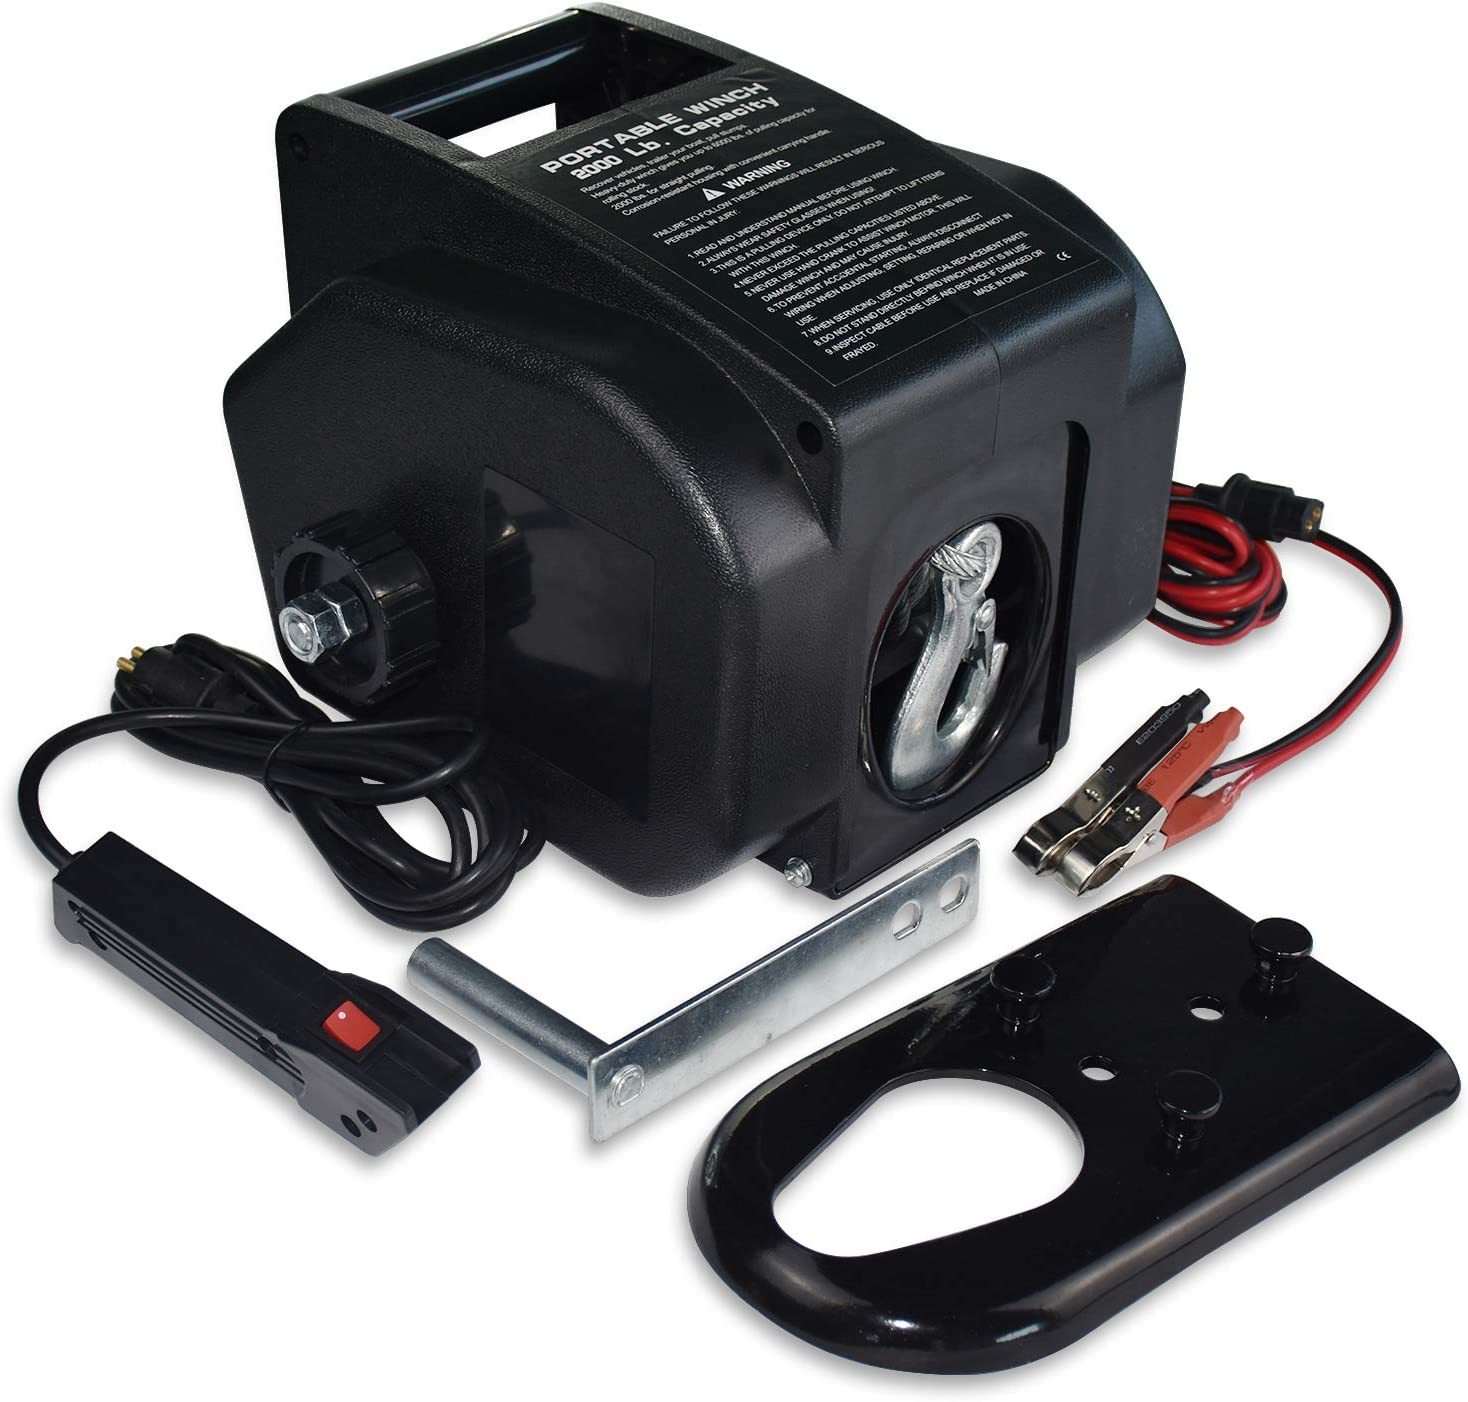 for Boats up to 6000 lbs 12V DC,Power-in and Freewheel Operations Hantun Trailer Winch,Reversible Electric Winch Power-Out with Corded Remote Control /& Hand Crank